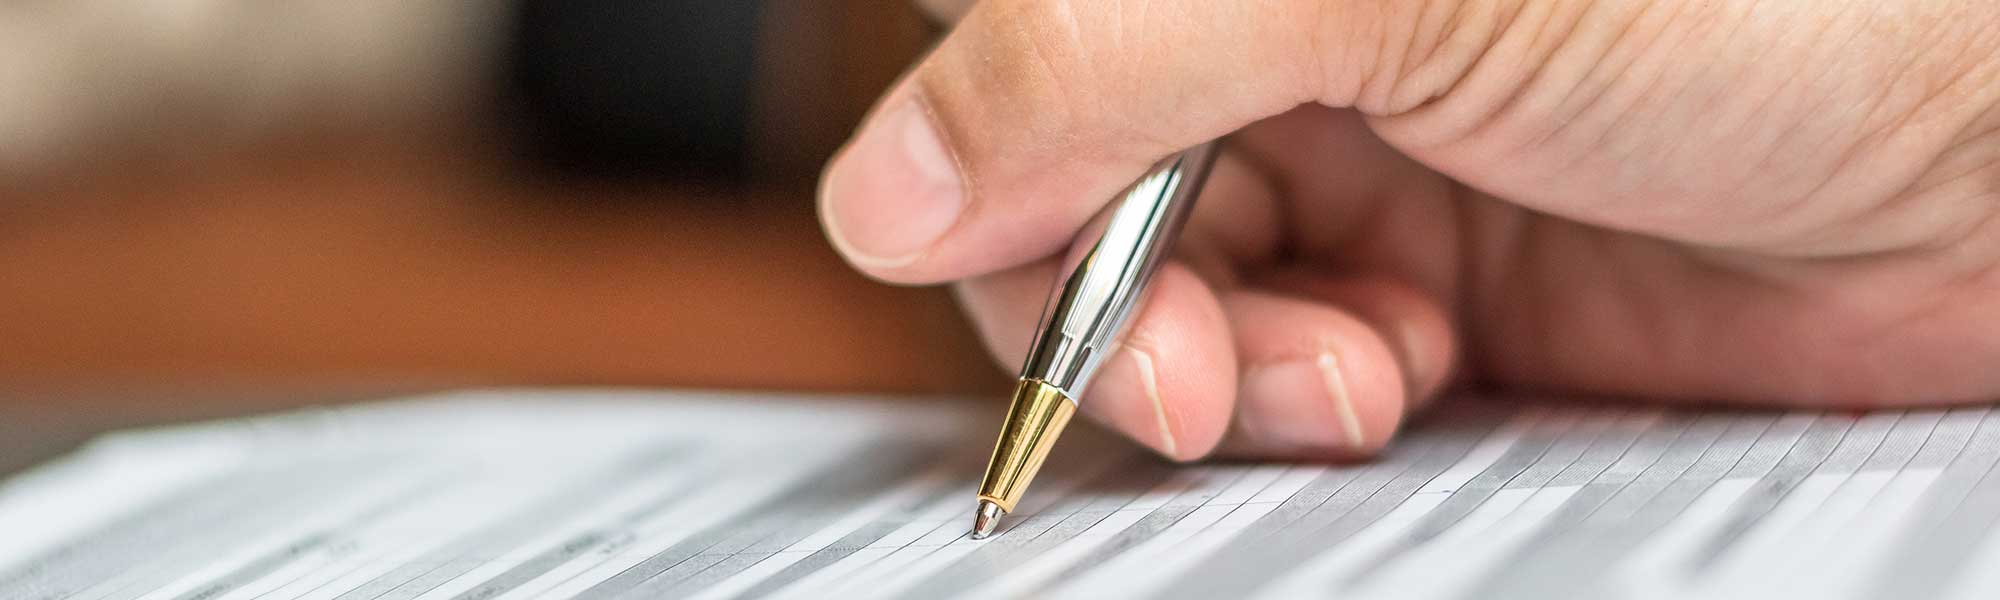 Hand using a pen to fill in an application form